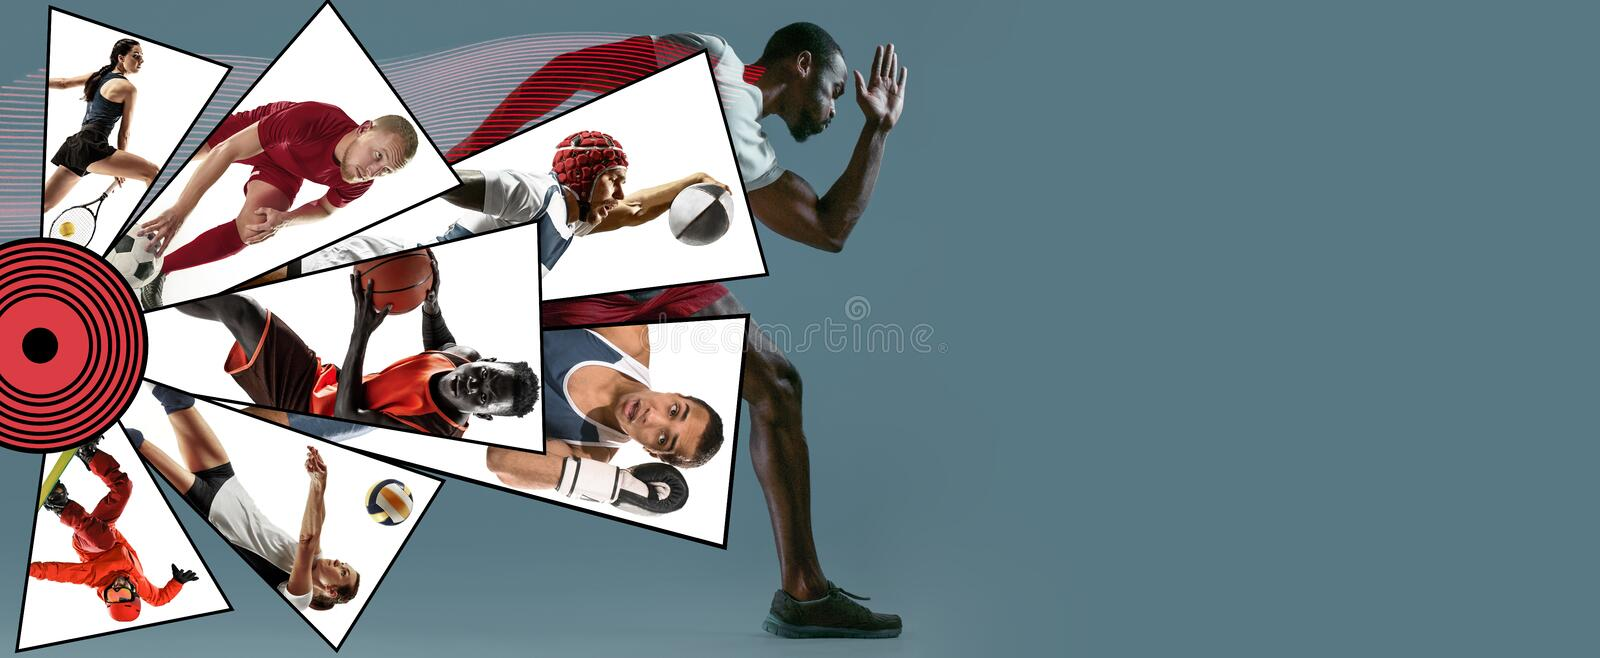 Creative collage made with different kinds of sport. Creative collage made of photos of 8 models. Childrens in sport and healthy lifestyle. Hockey, basketball royalty free stock photography